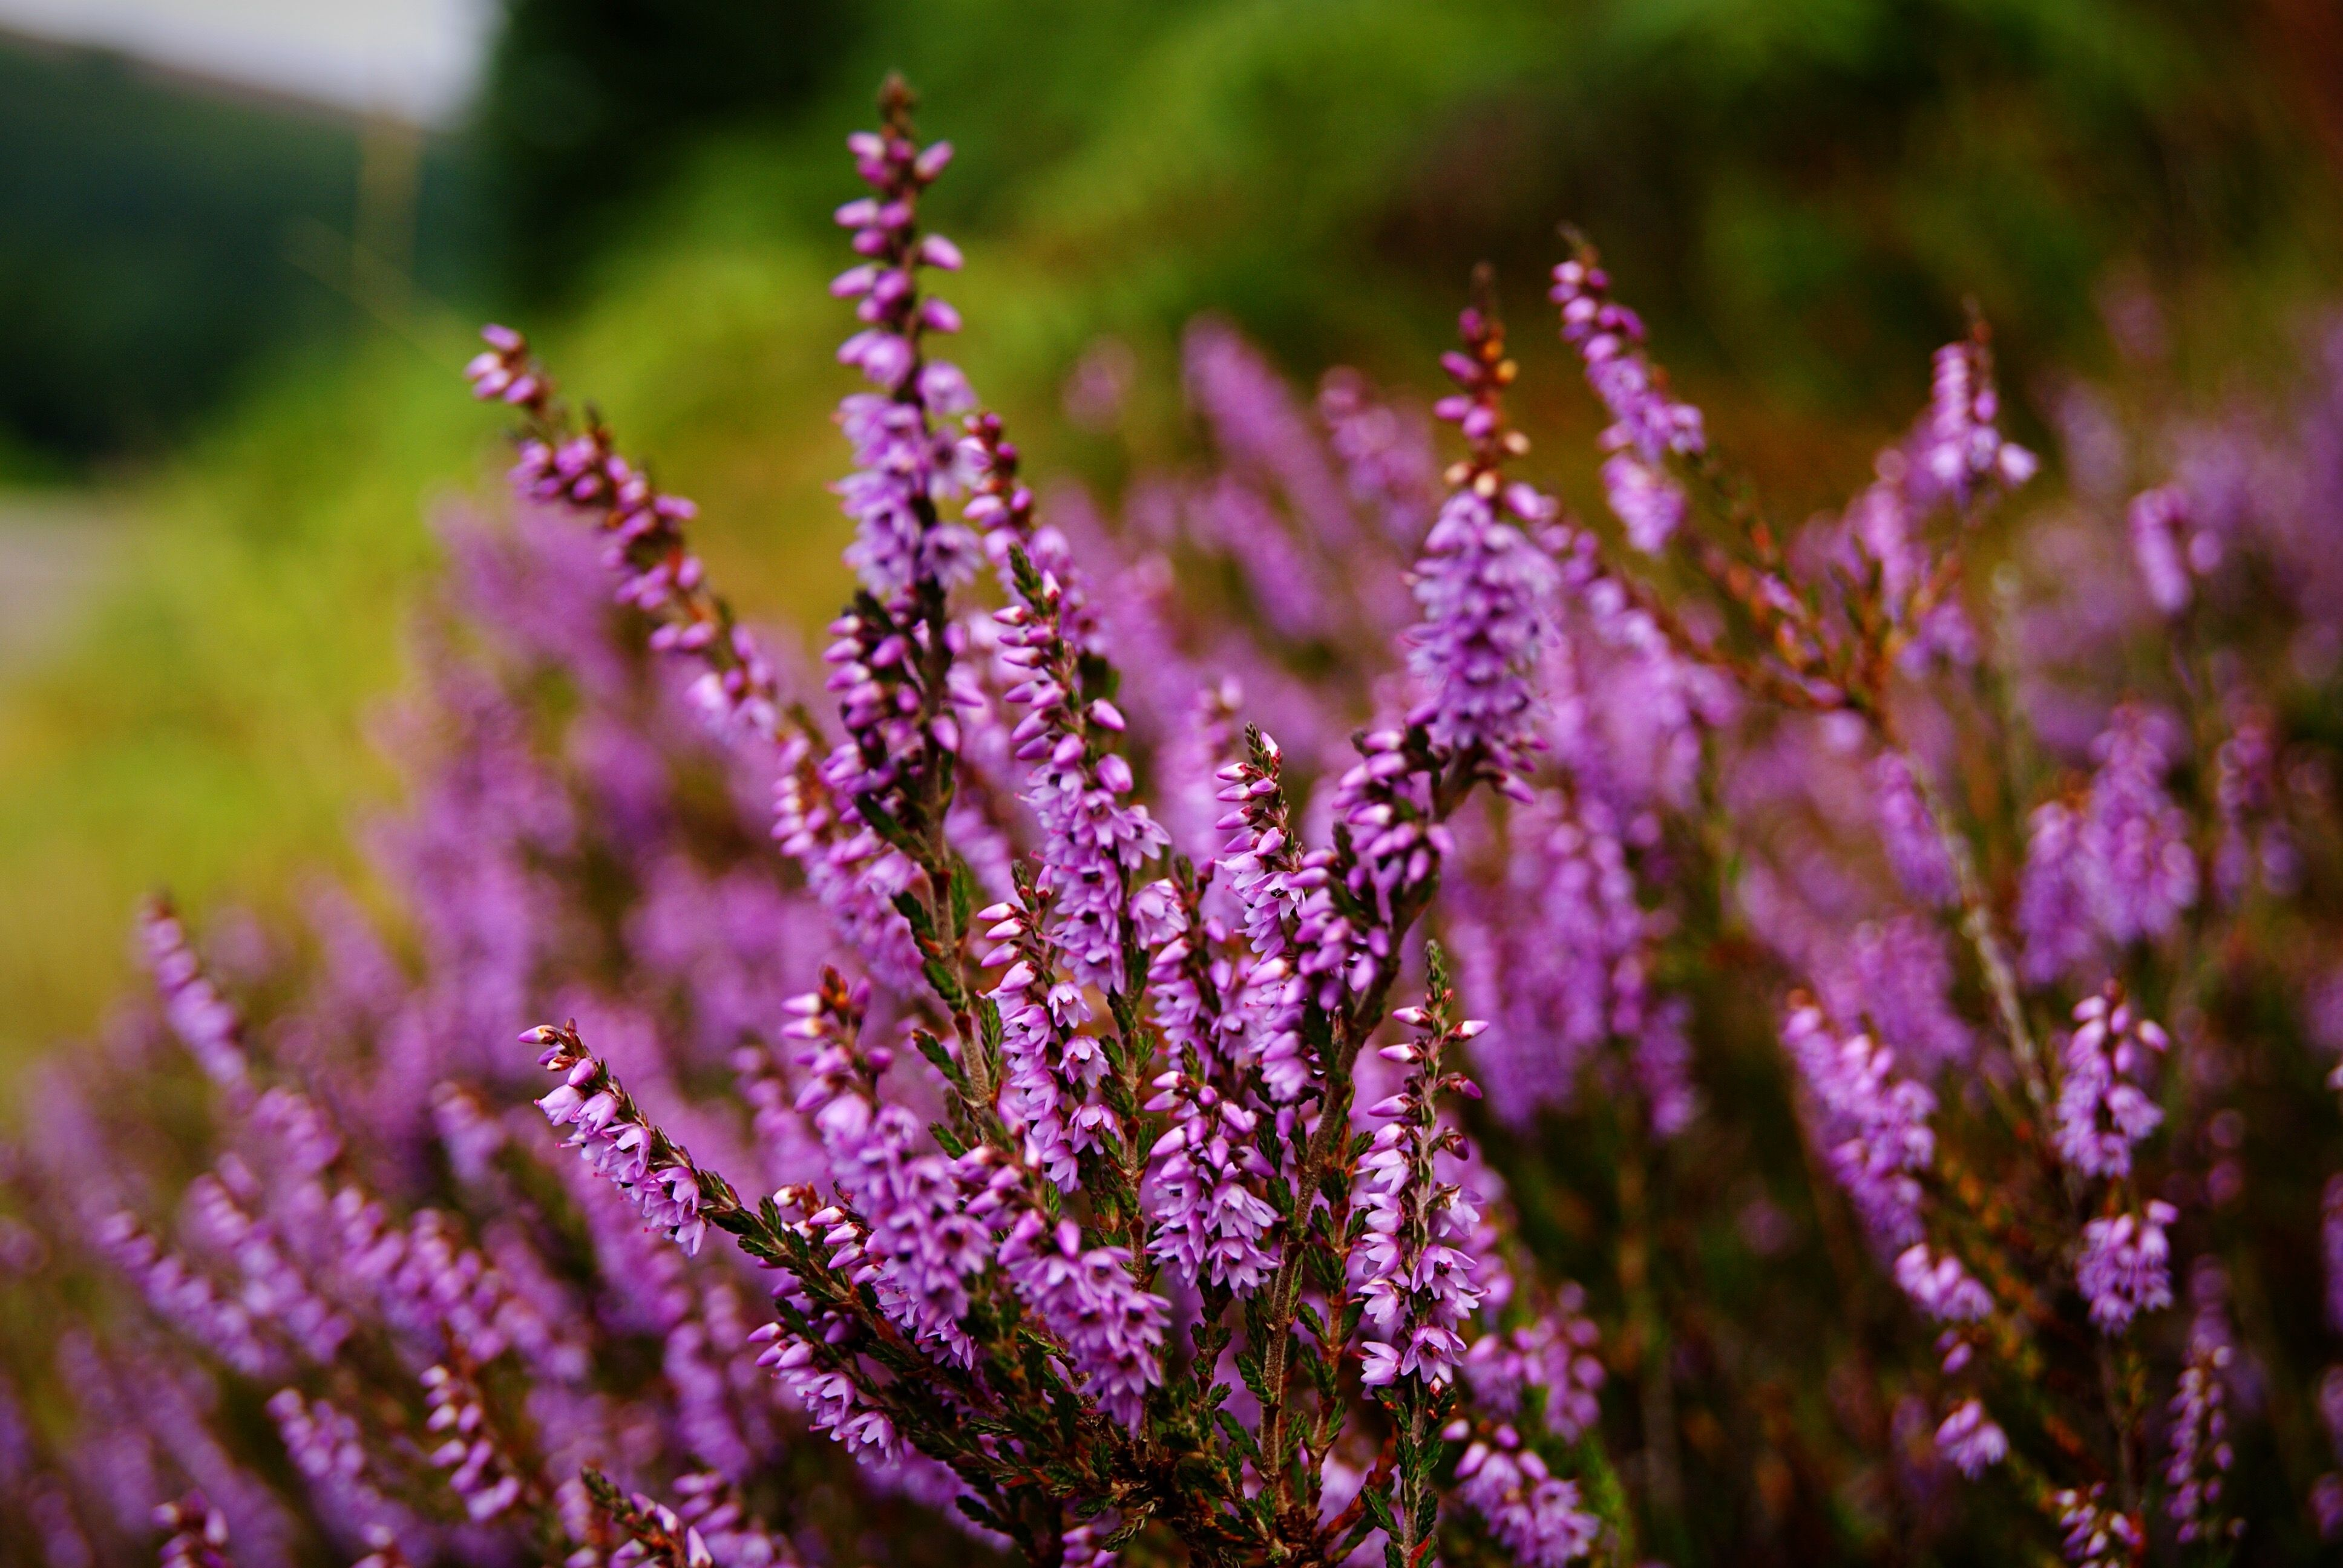 Close-Up Of Purple Heather Blooming On Field